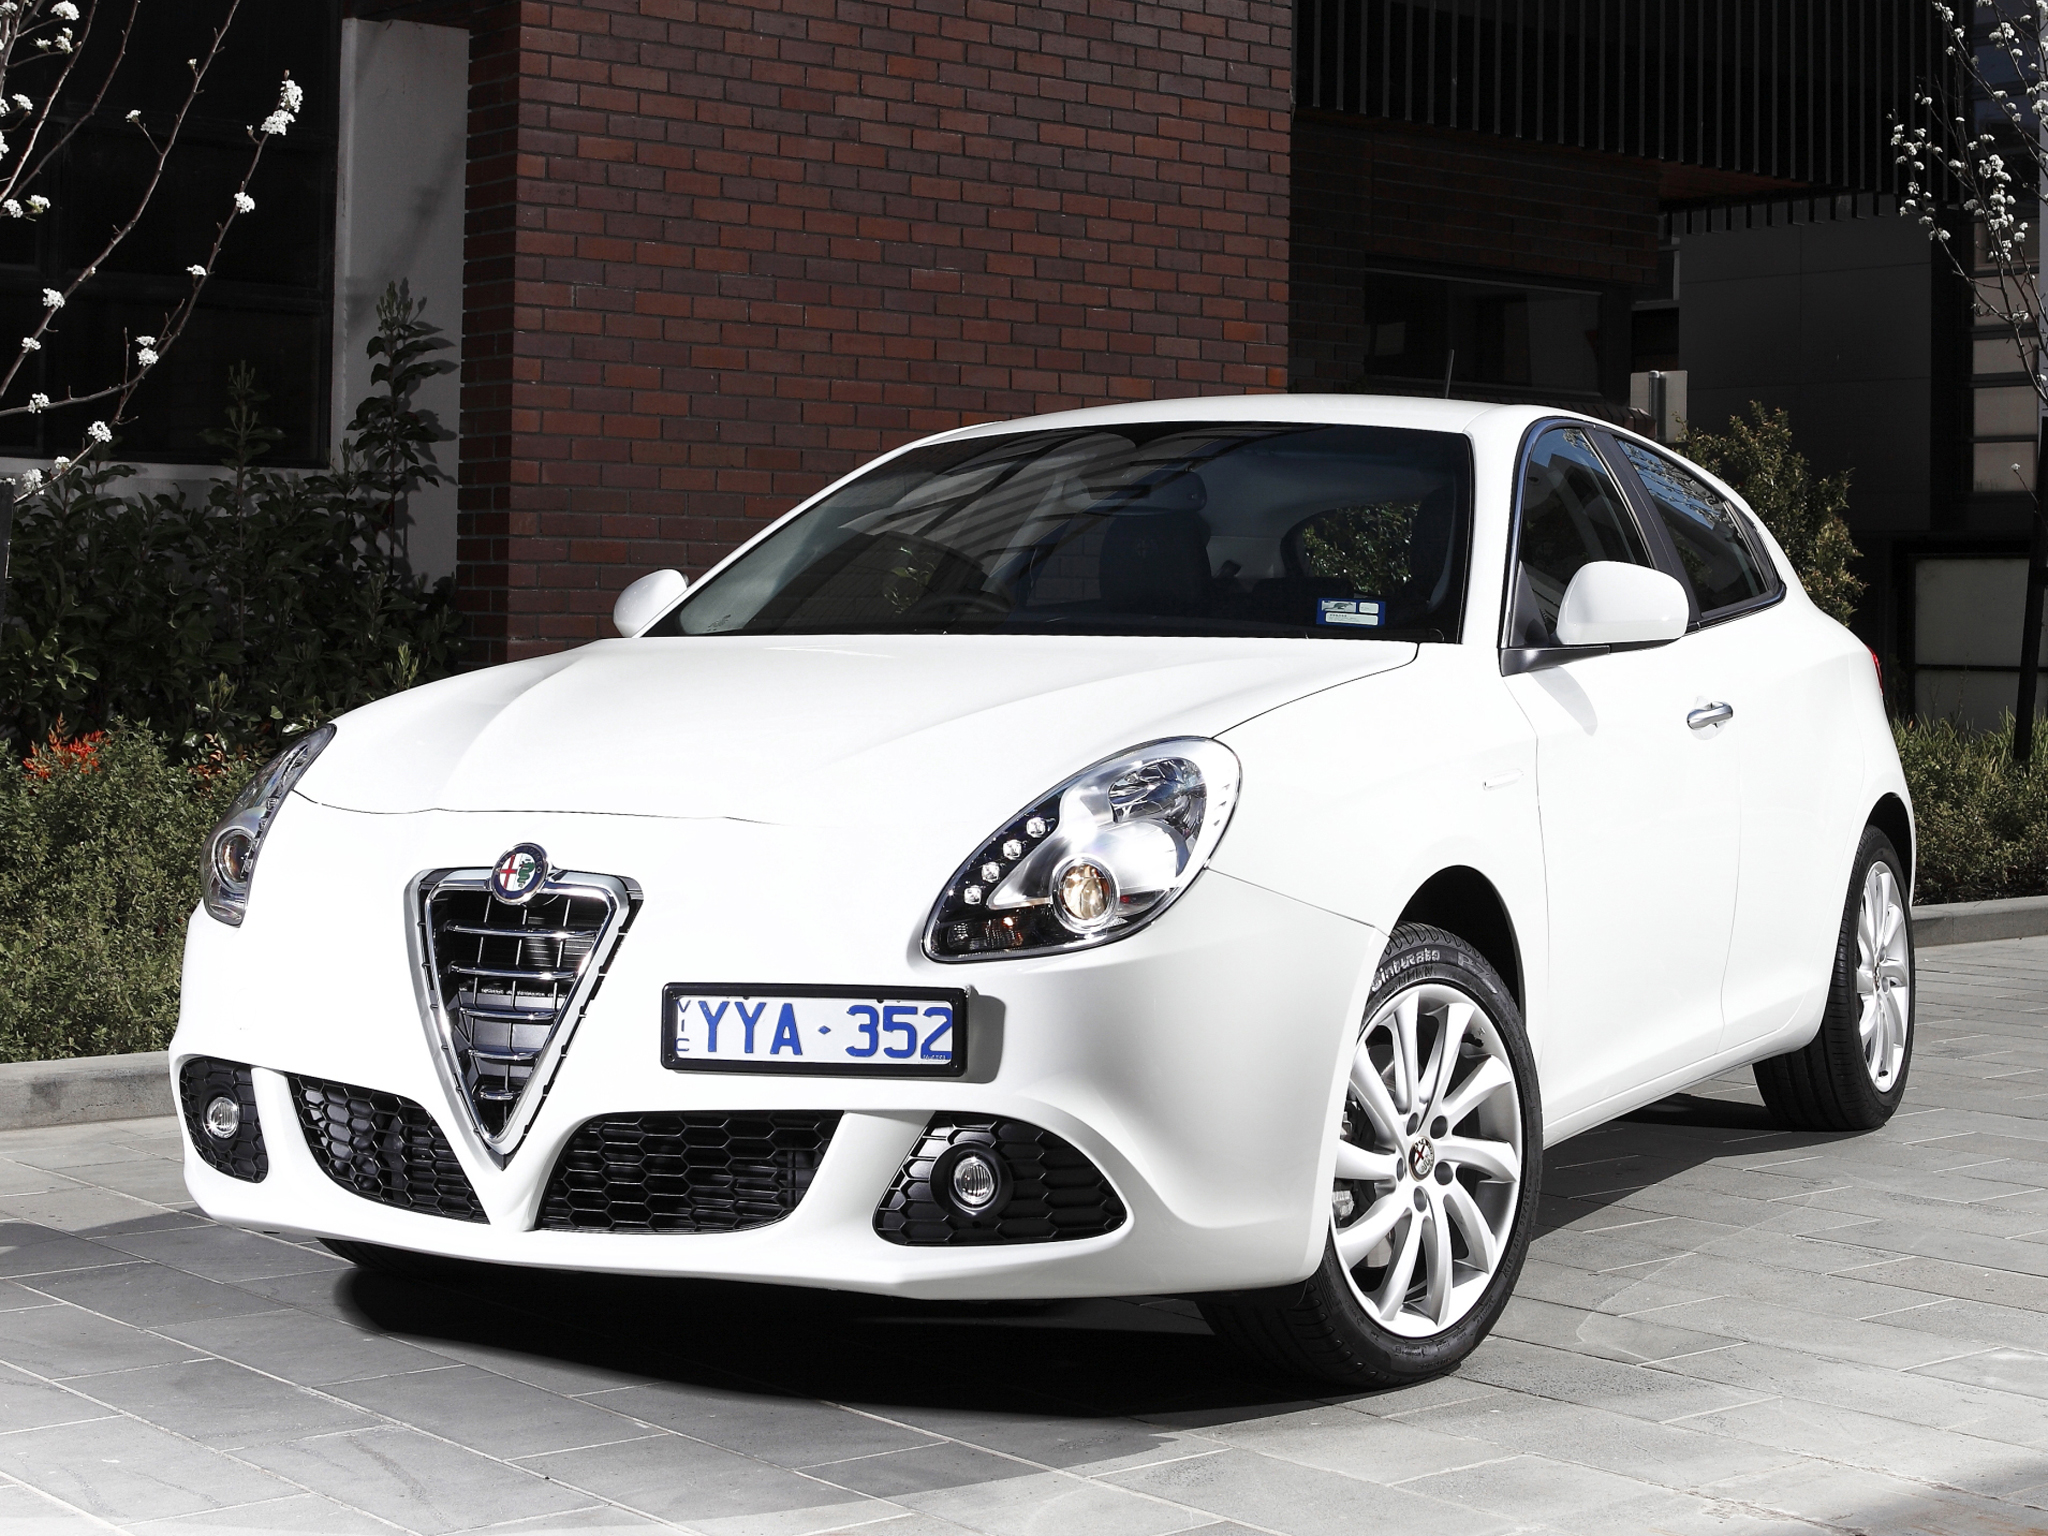 Alfa Romeo Giulietta photo 96850